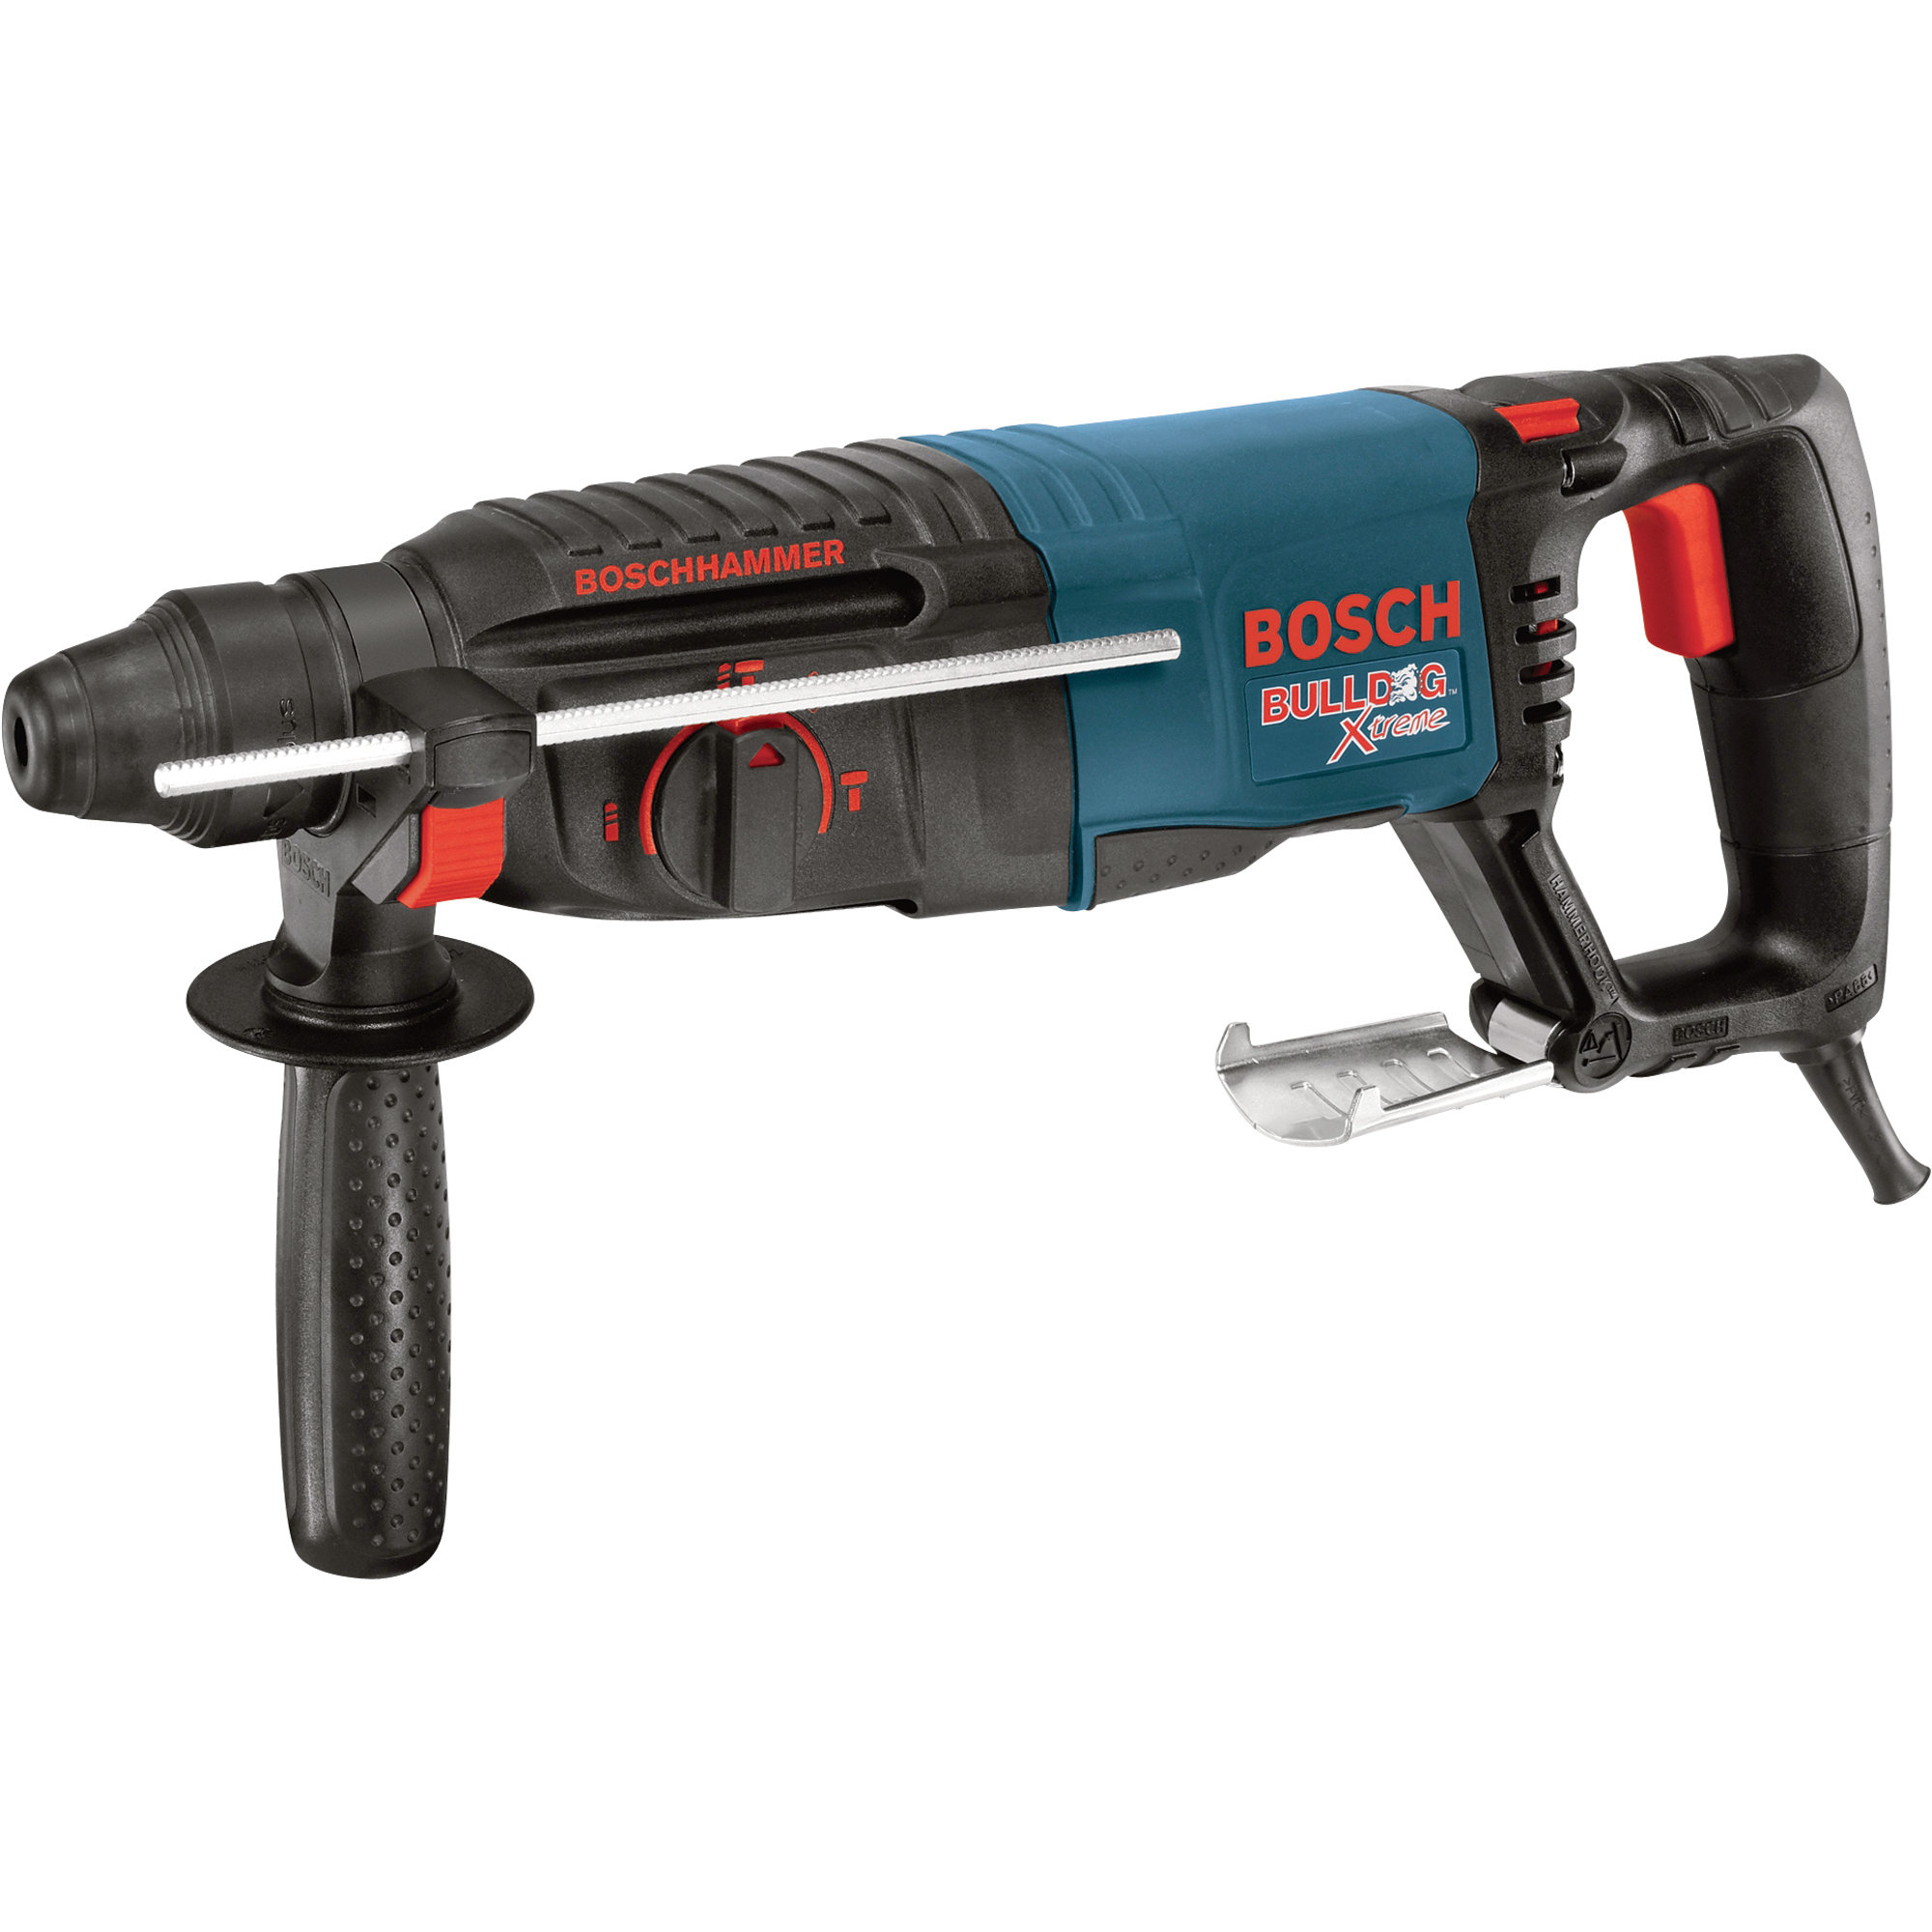 In Stock Free delivery Buy Bosch hammer drill bits home depot on indianheadprimefavor.tk, buy online best Hammer Drills & Power Drills brands because we supply trade quality Hammer Drills, Cordless Drills & Accessories. Free UK Delivery.